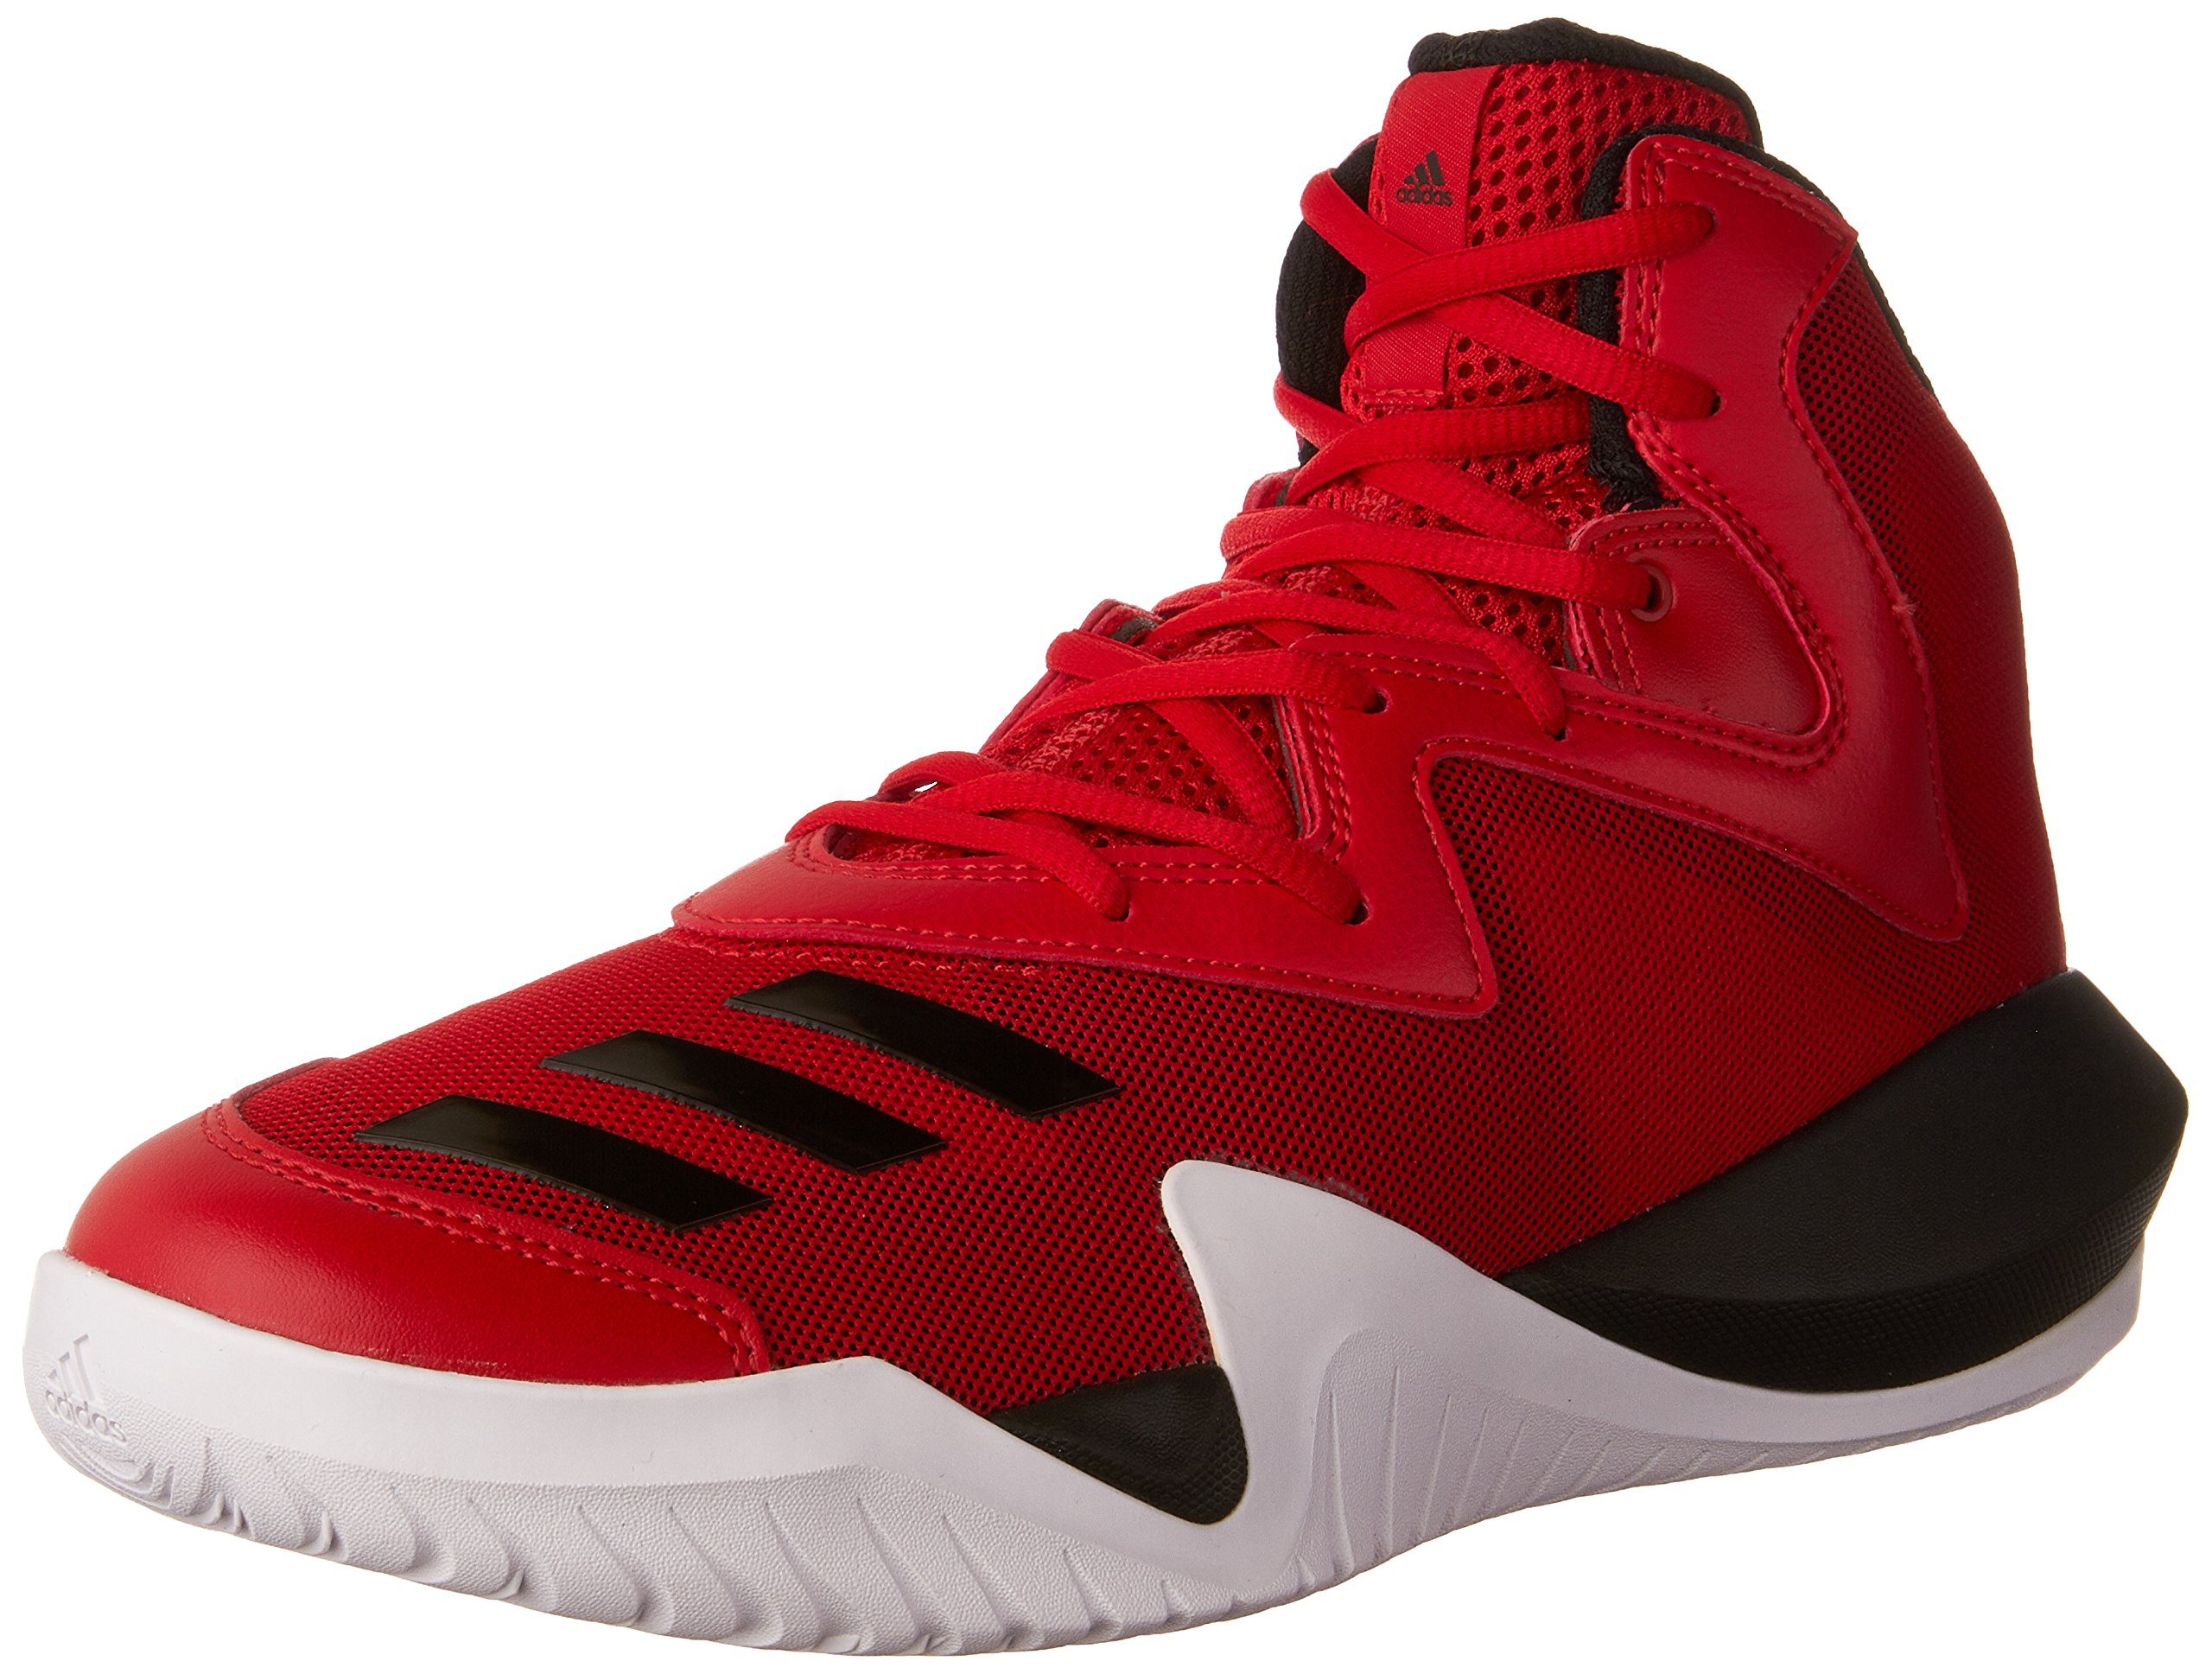 newest 82573 982cd Galleon - Adidas Crazy Team 2017 Shoe Mens Basketball 9 Scarlet-Core Black- White